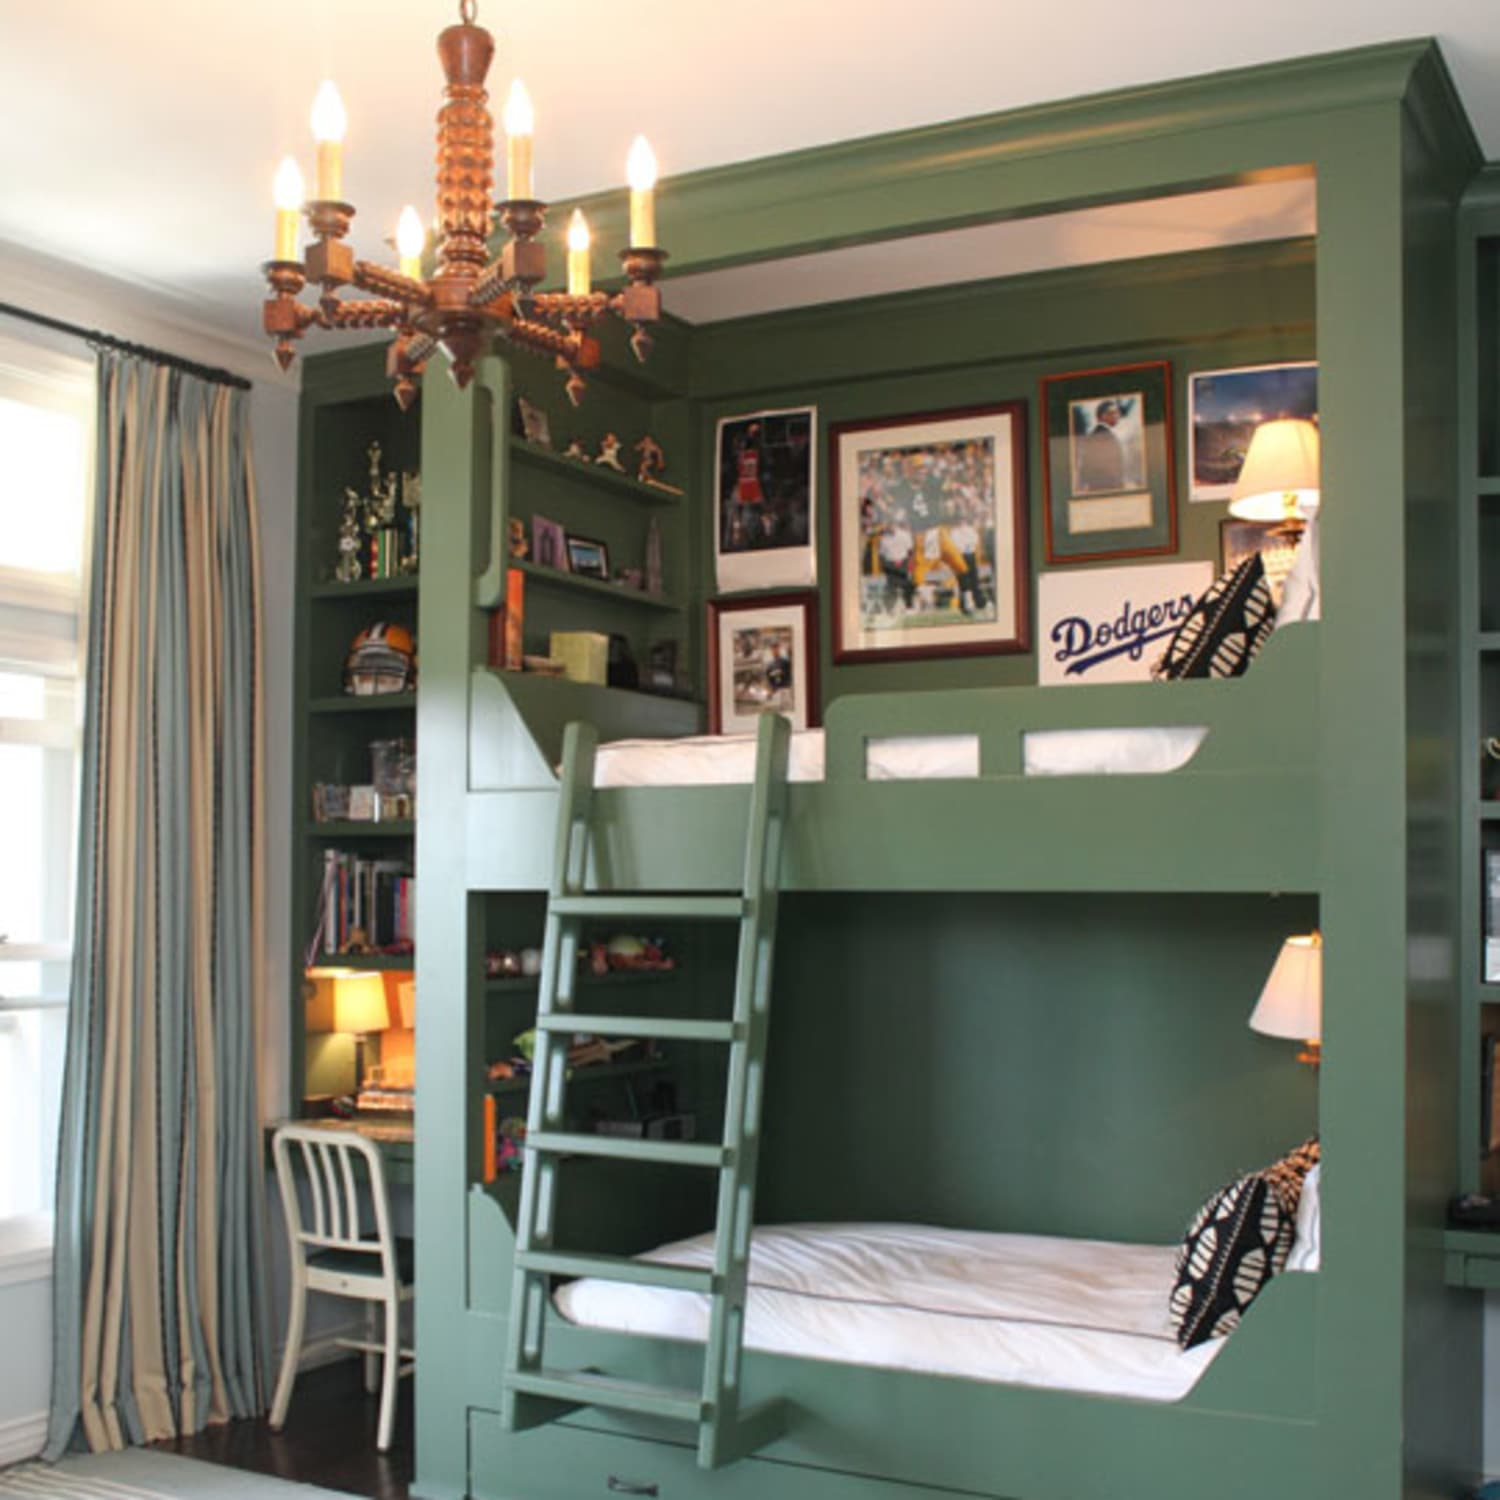 8 Bunk Bed Shelf Ideas For Top Bunk Storage Space Apartment Therapy